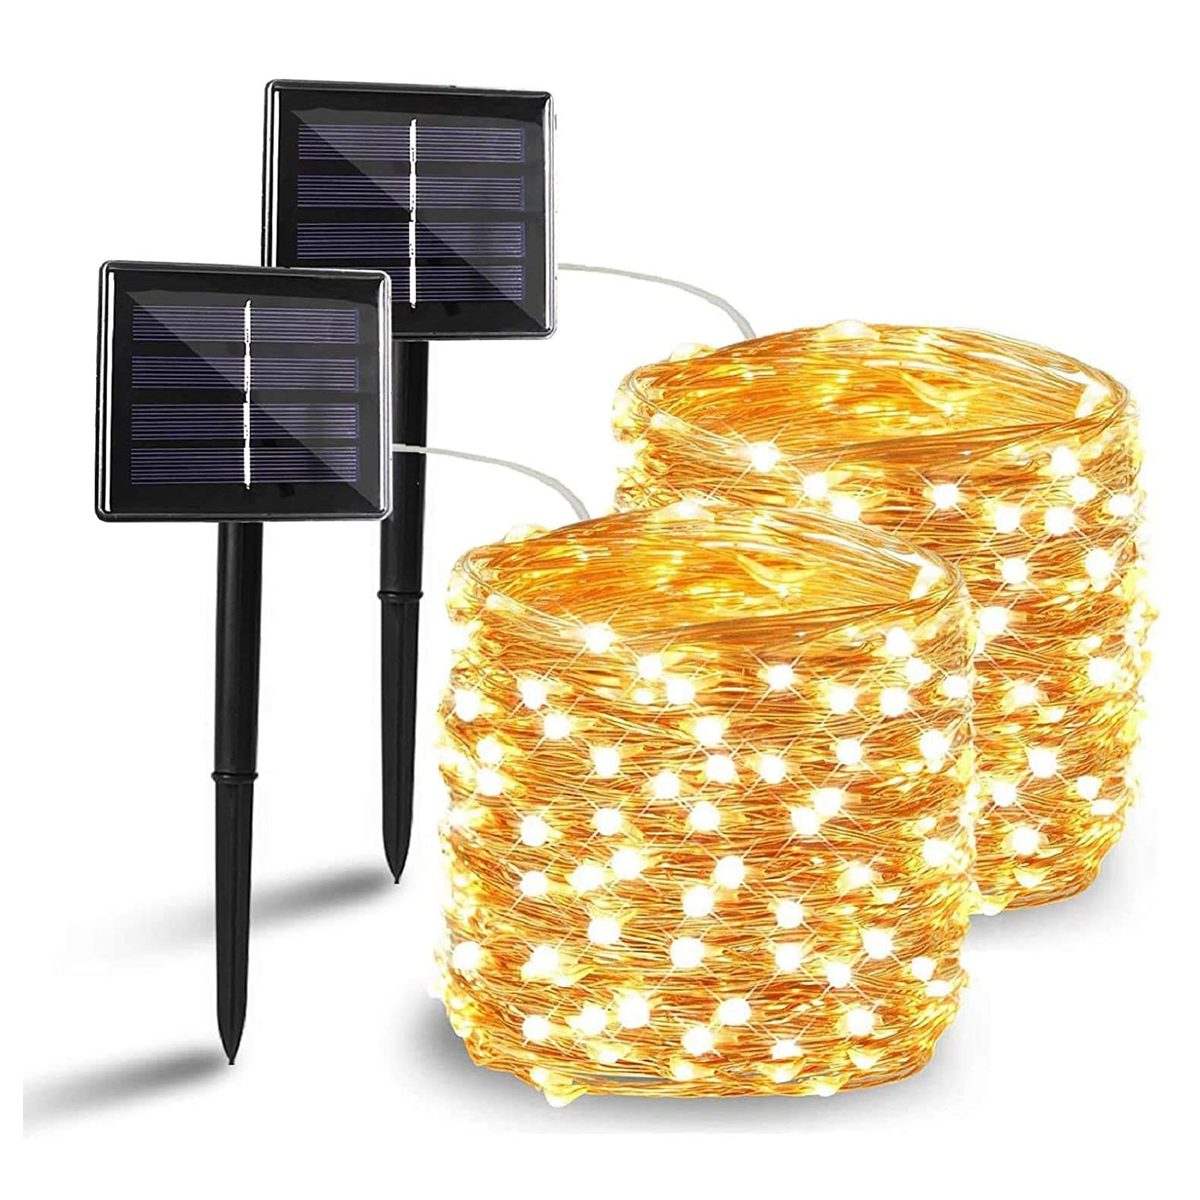 Solar led Fairy light String 12m 100LED / 5M 50LED Waterproof For Garden decoration Outdoor DIY Christmas Easy to install